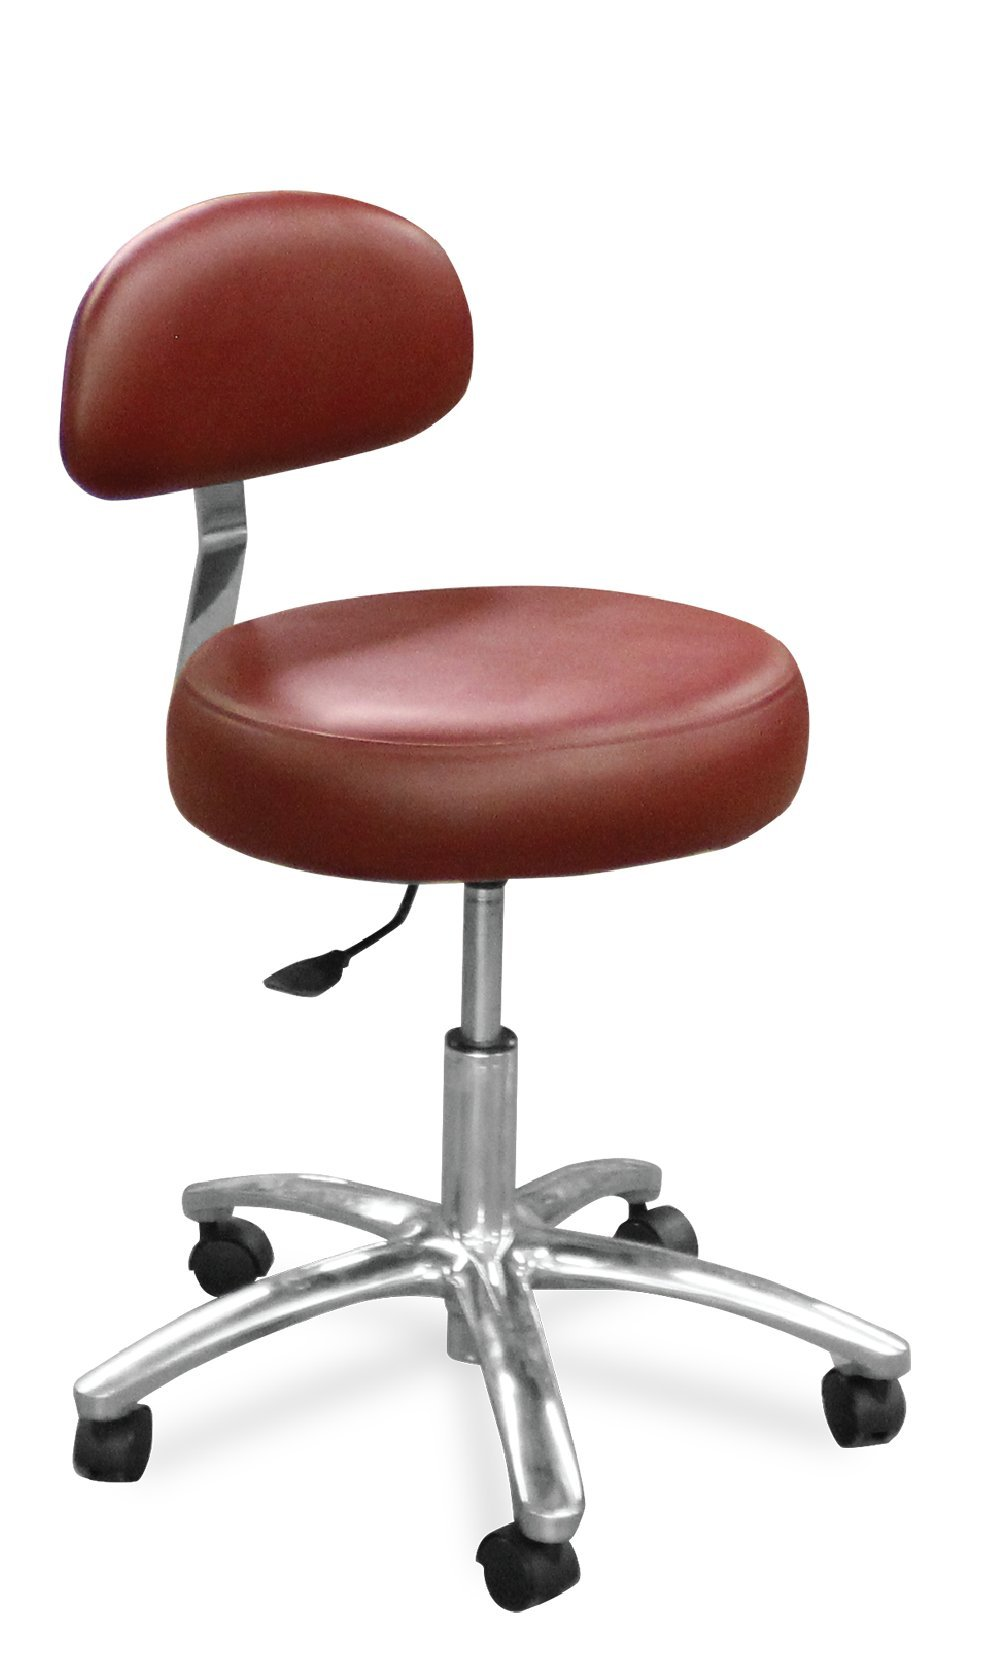 Dentists Unite 510-213 Dental Doctor Stool, Round Seat, Firm Backrest, Cinnamon